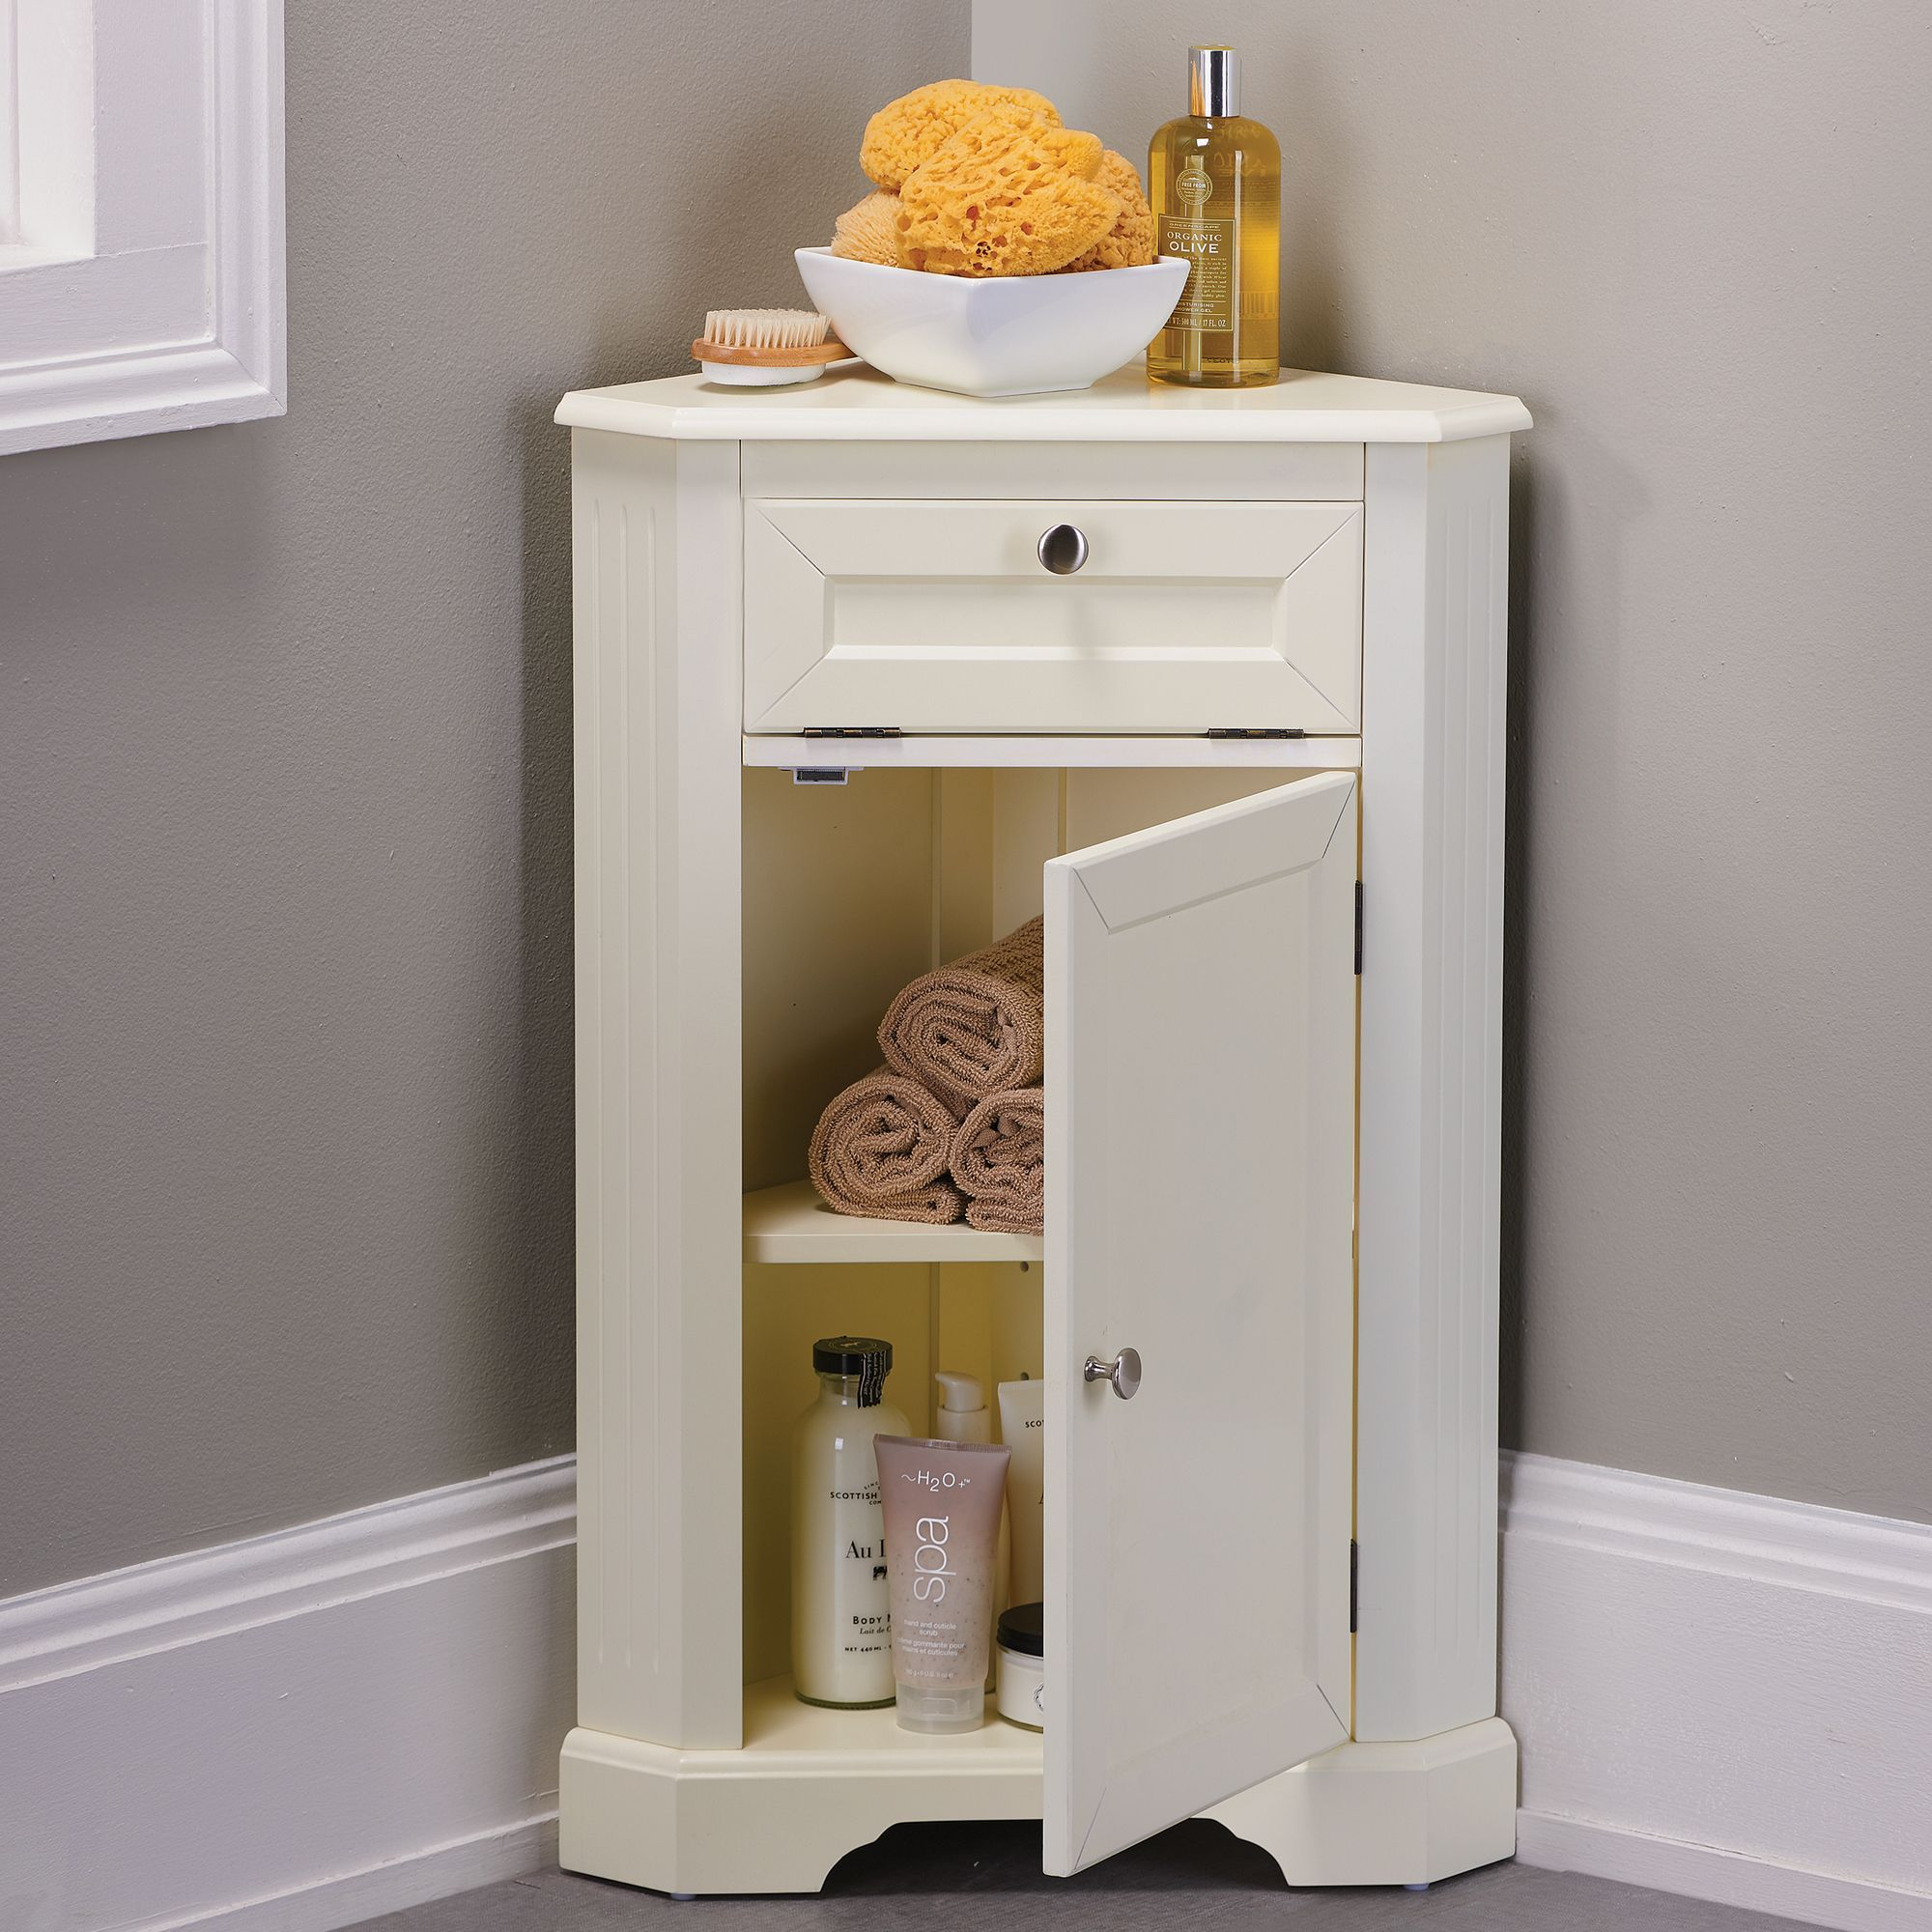 Maximize Storage Space In Small Bathrooms With Our Weatherby Corner Storage Cabinet Our Bathroom Floor Cabinets Corner Storage Cabinet Bathroom Corner Storage